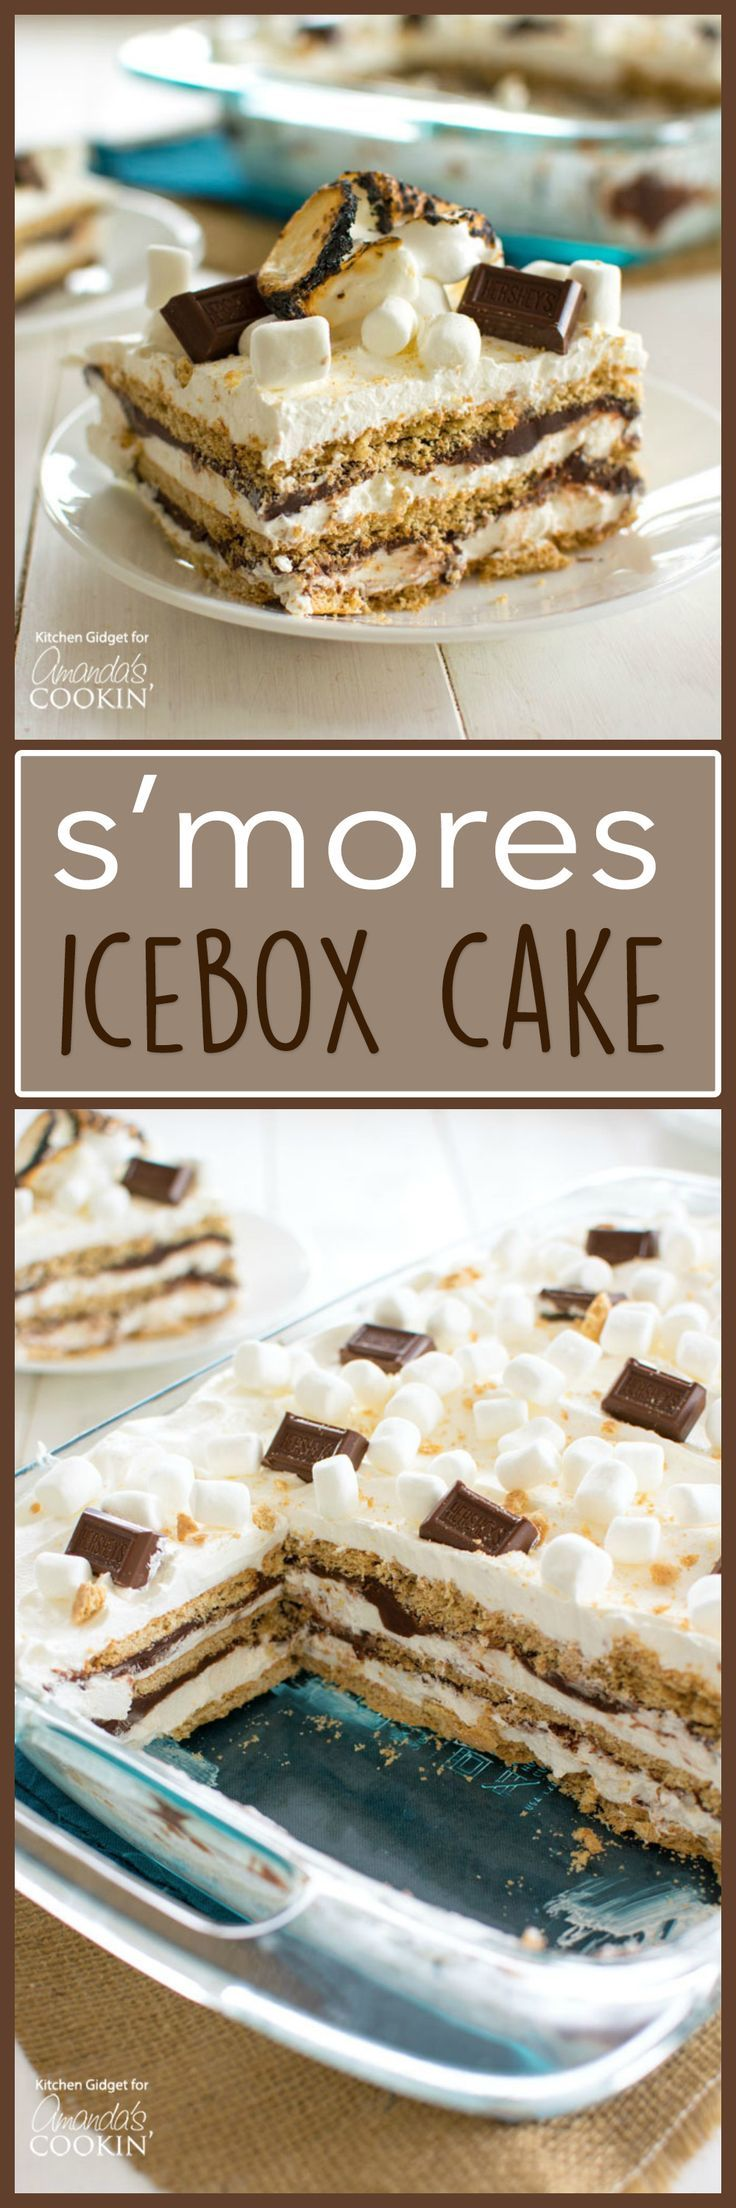 S'mores Icebox Cake: With layers of graham crackers, marshmallow whipped cream, and chocolate ganache I guarantee everyone will be clamoring for s'more!